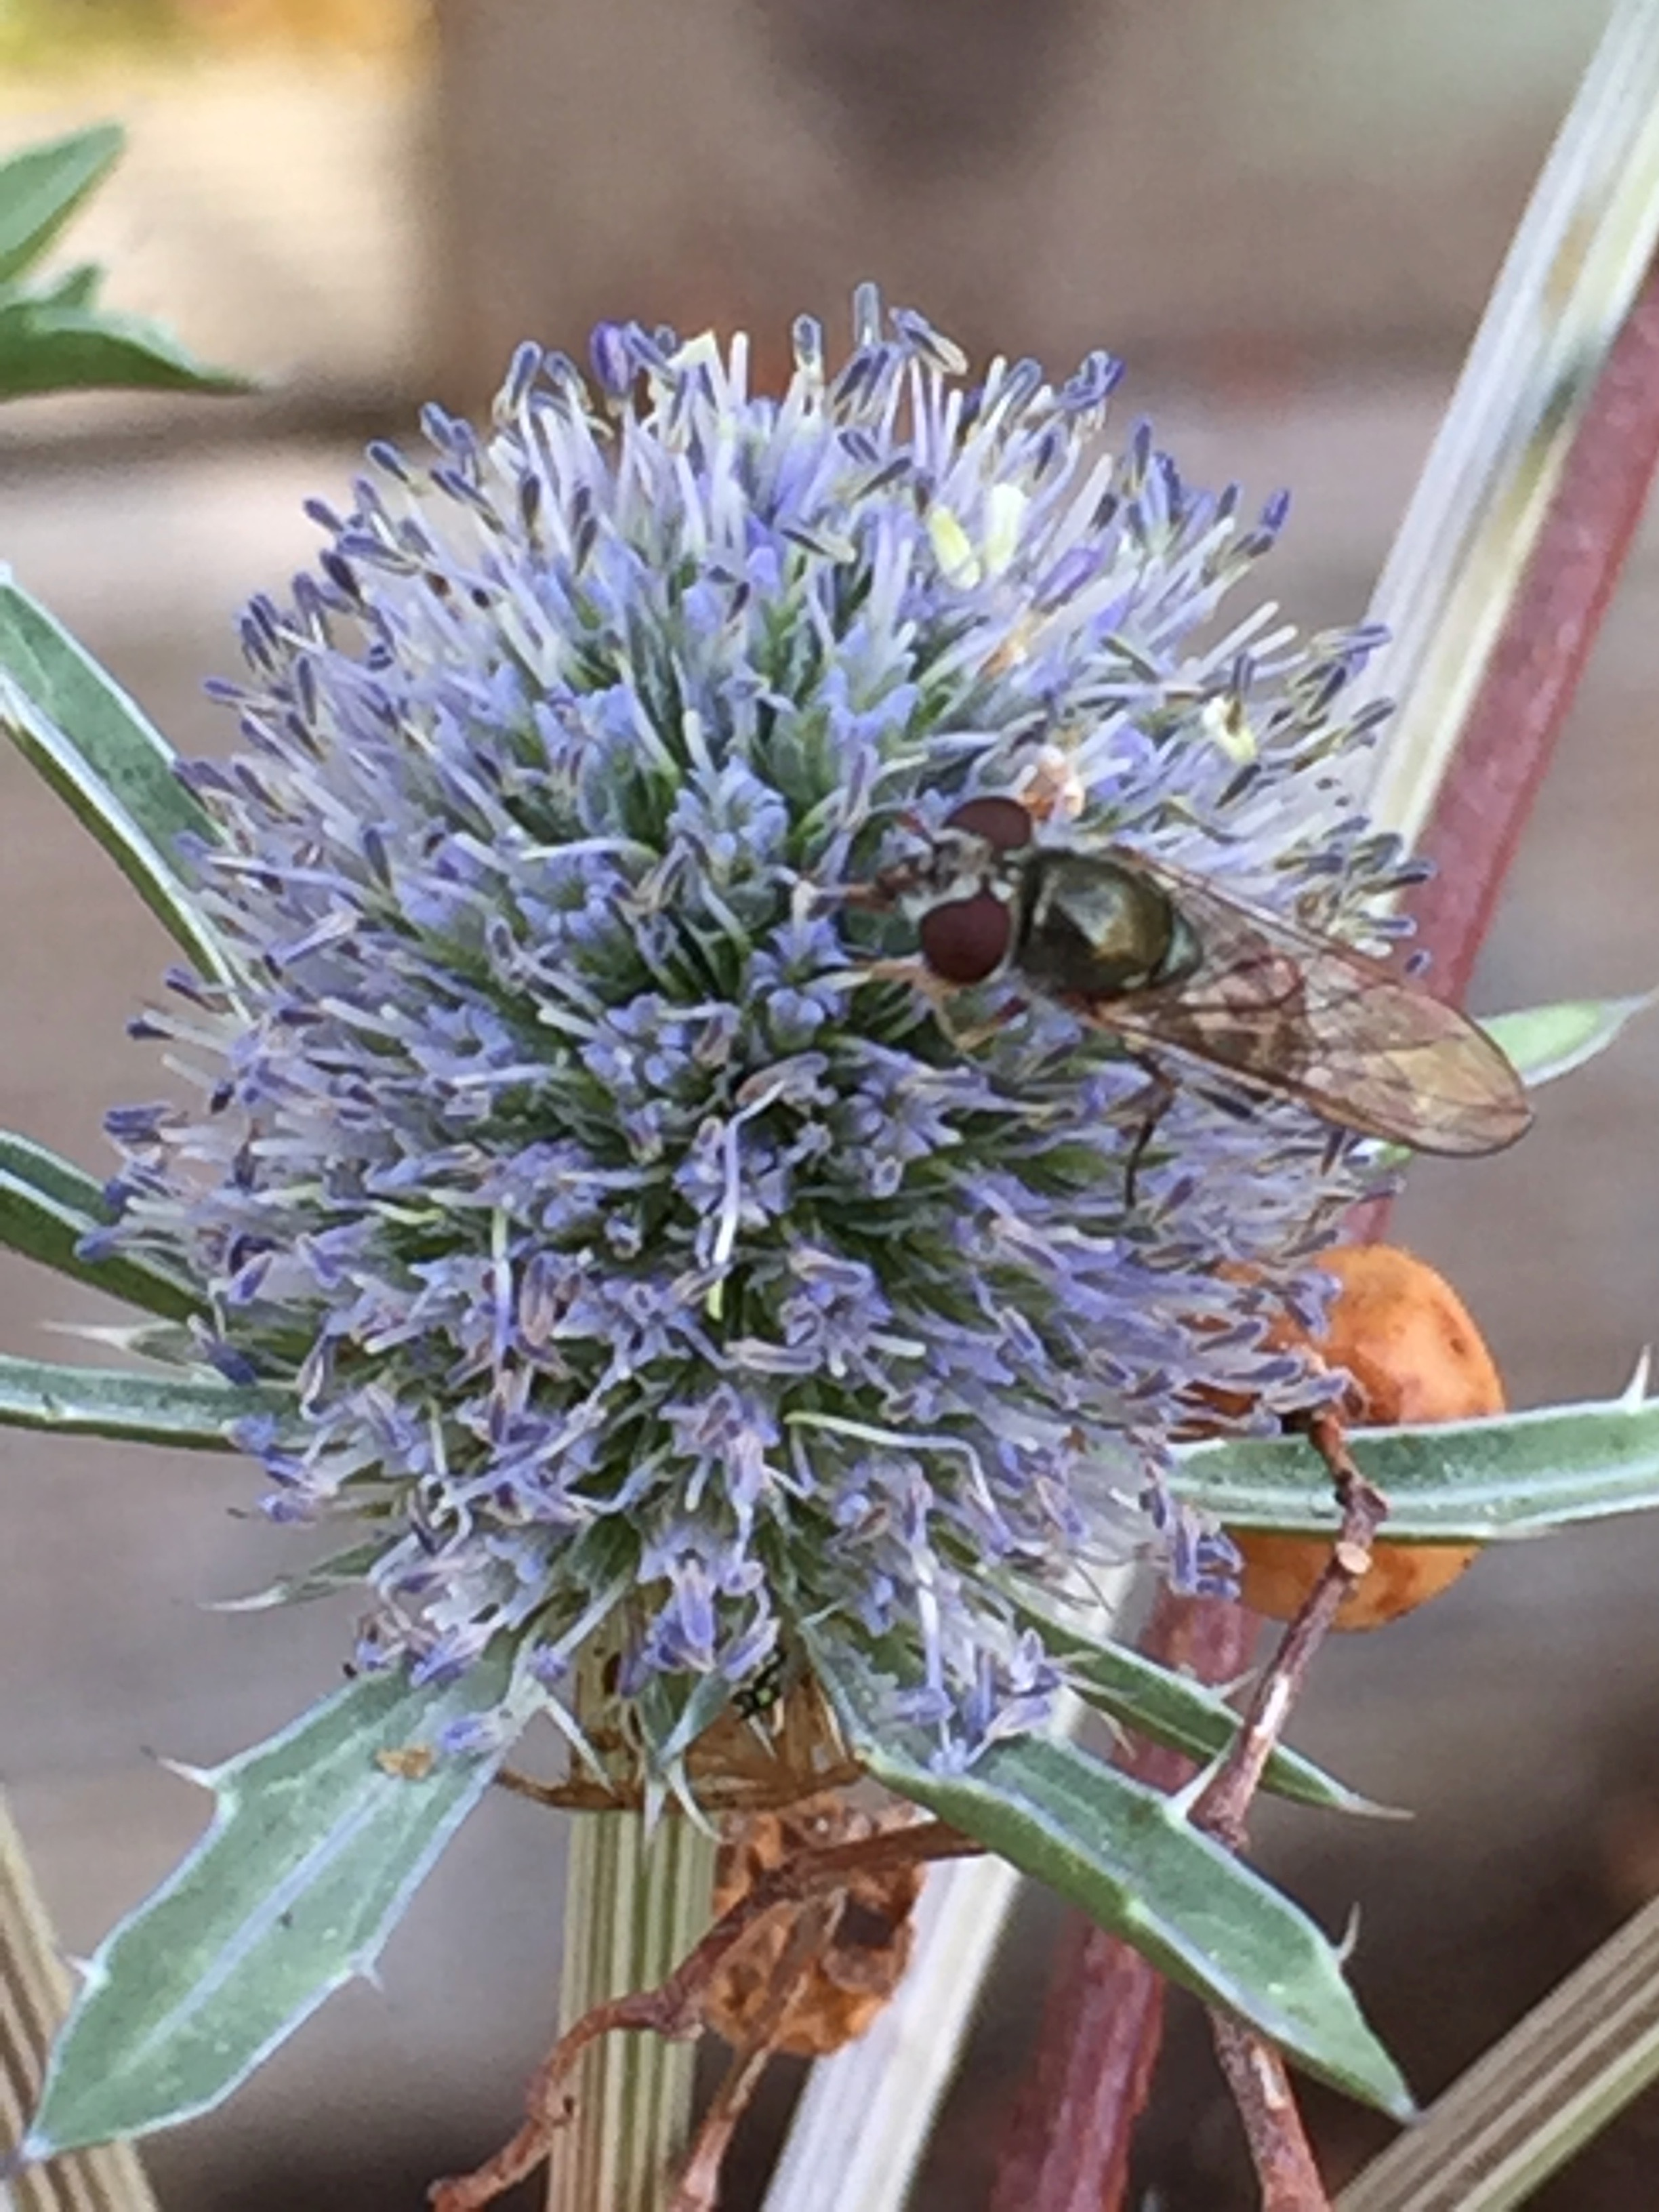 another hoverfly, this time on the  Eryngium